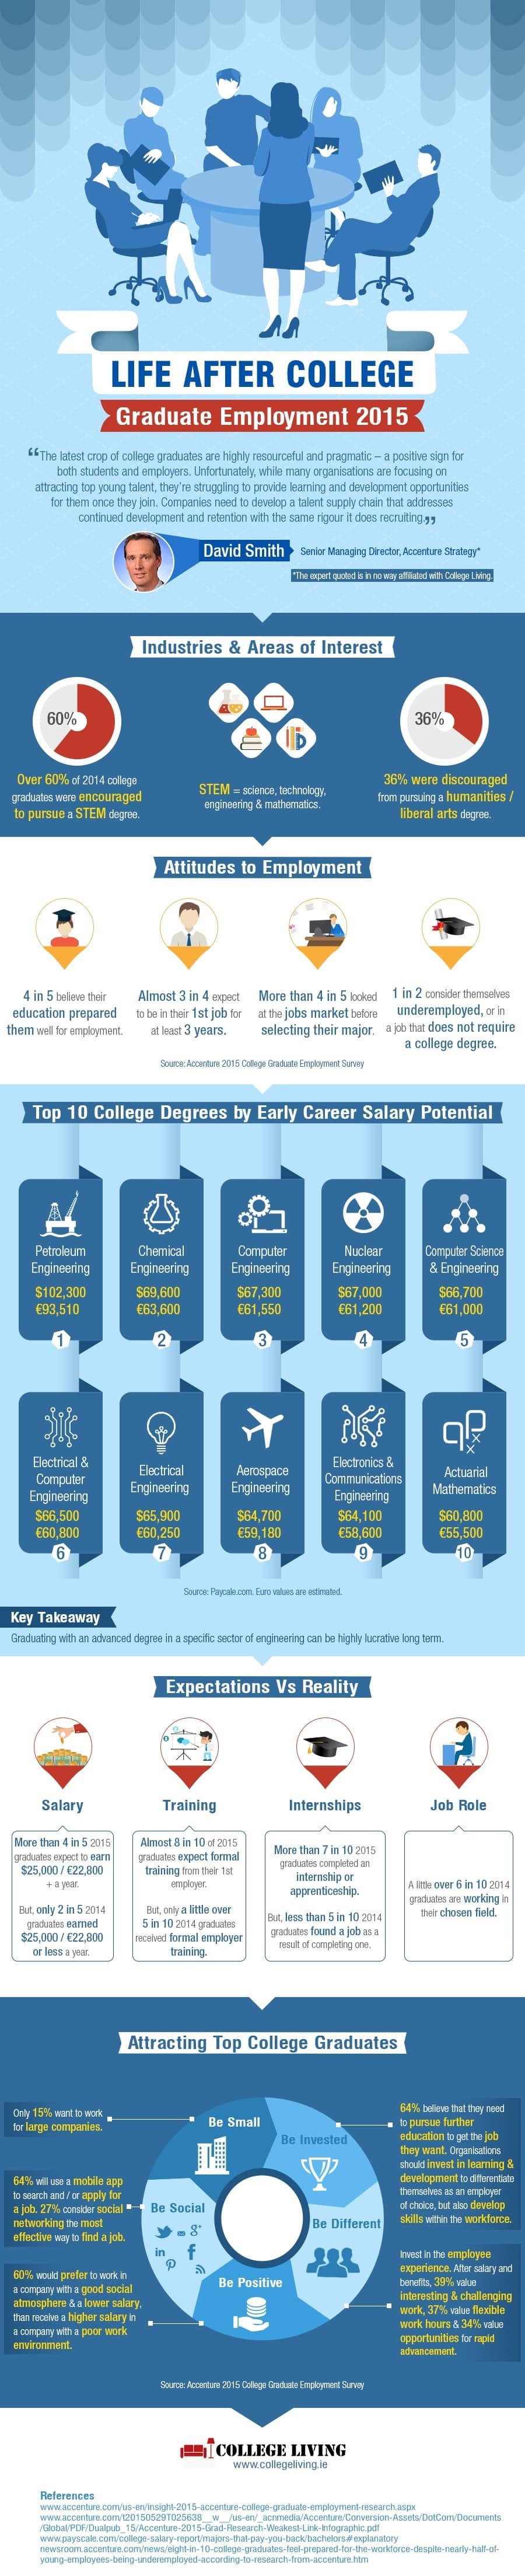 Life-After-College-Infographic